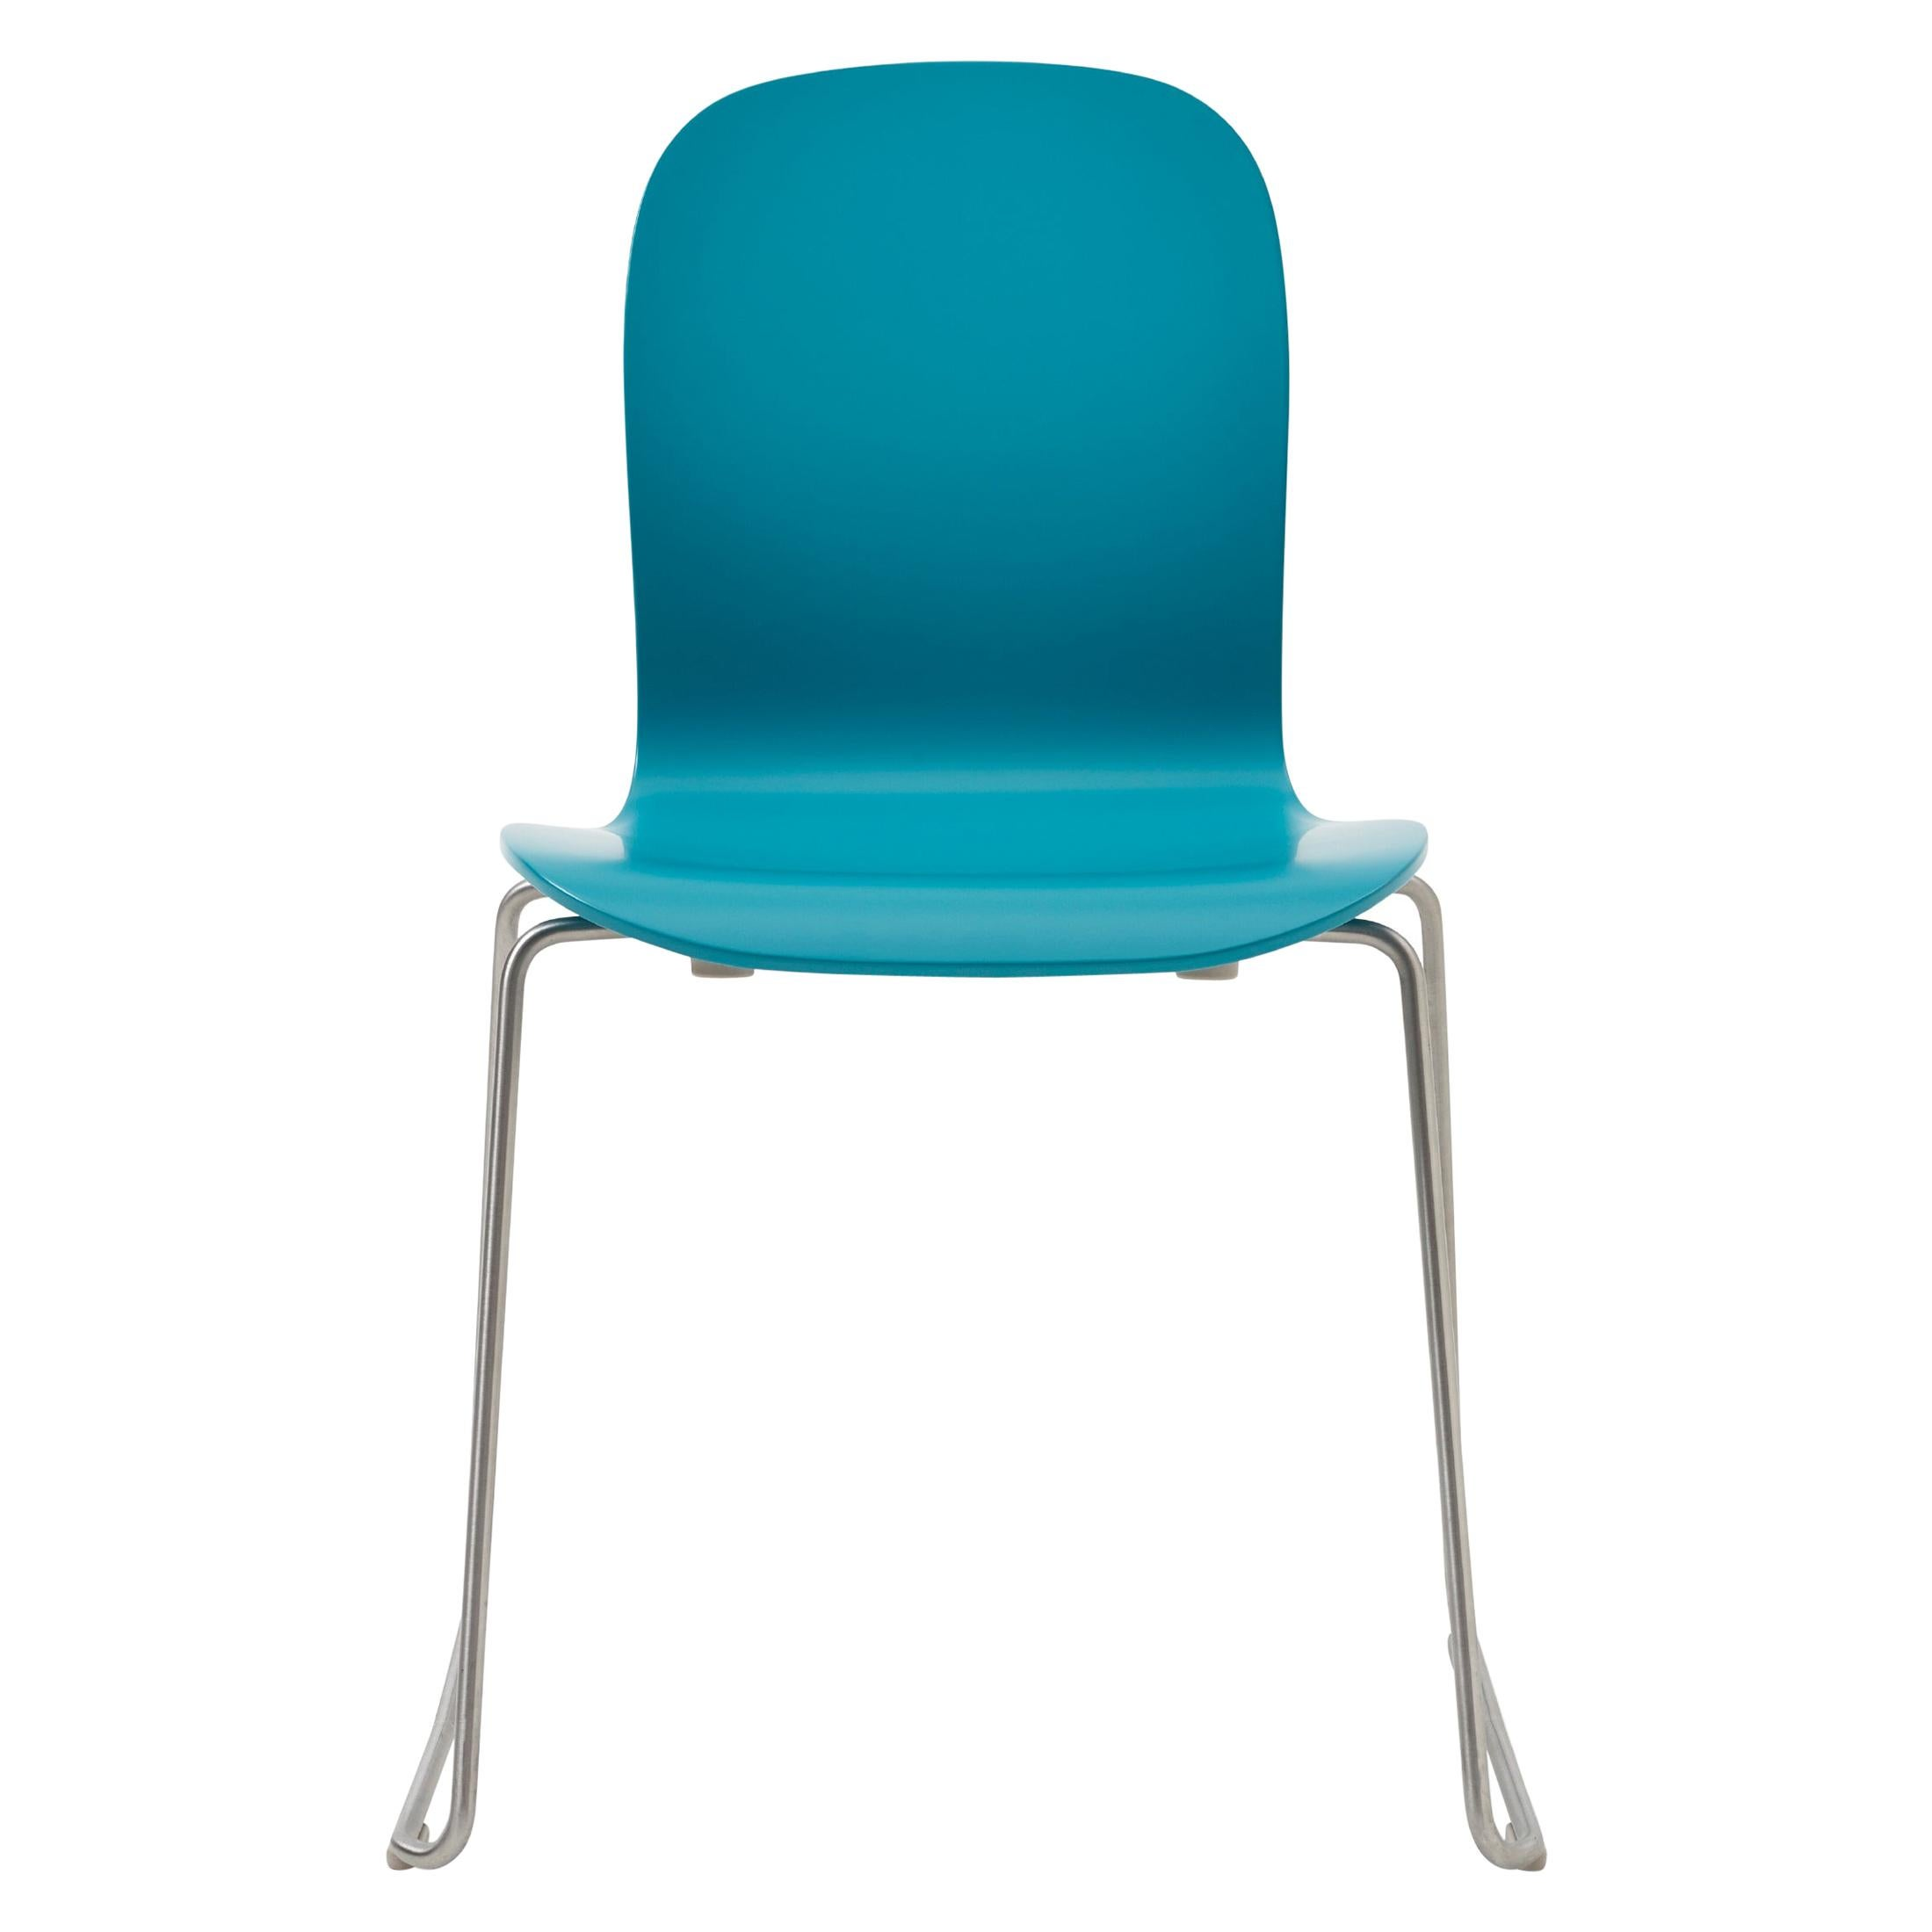 Jasper Morrison Tate Chair in Beech Plywood with Matte Lacquer for Cappellini